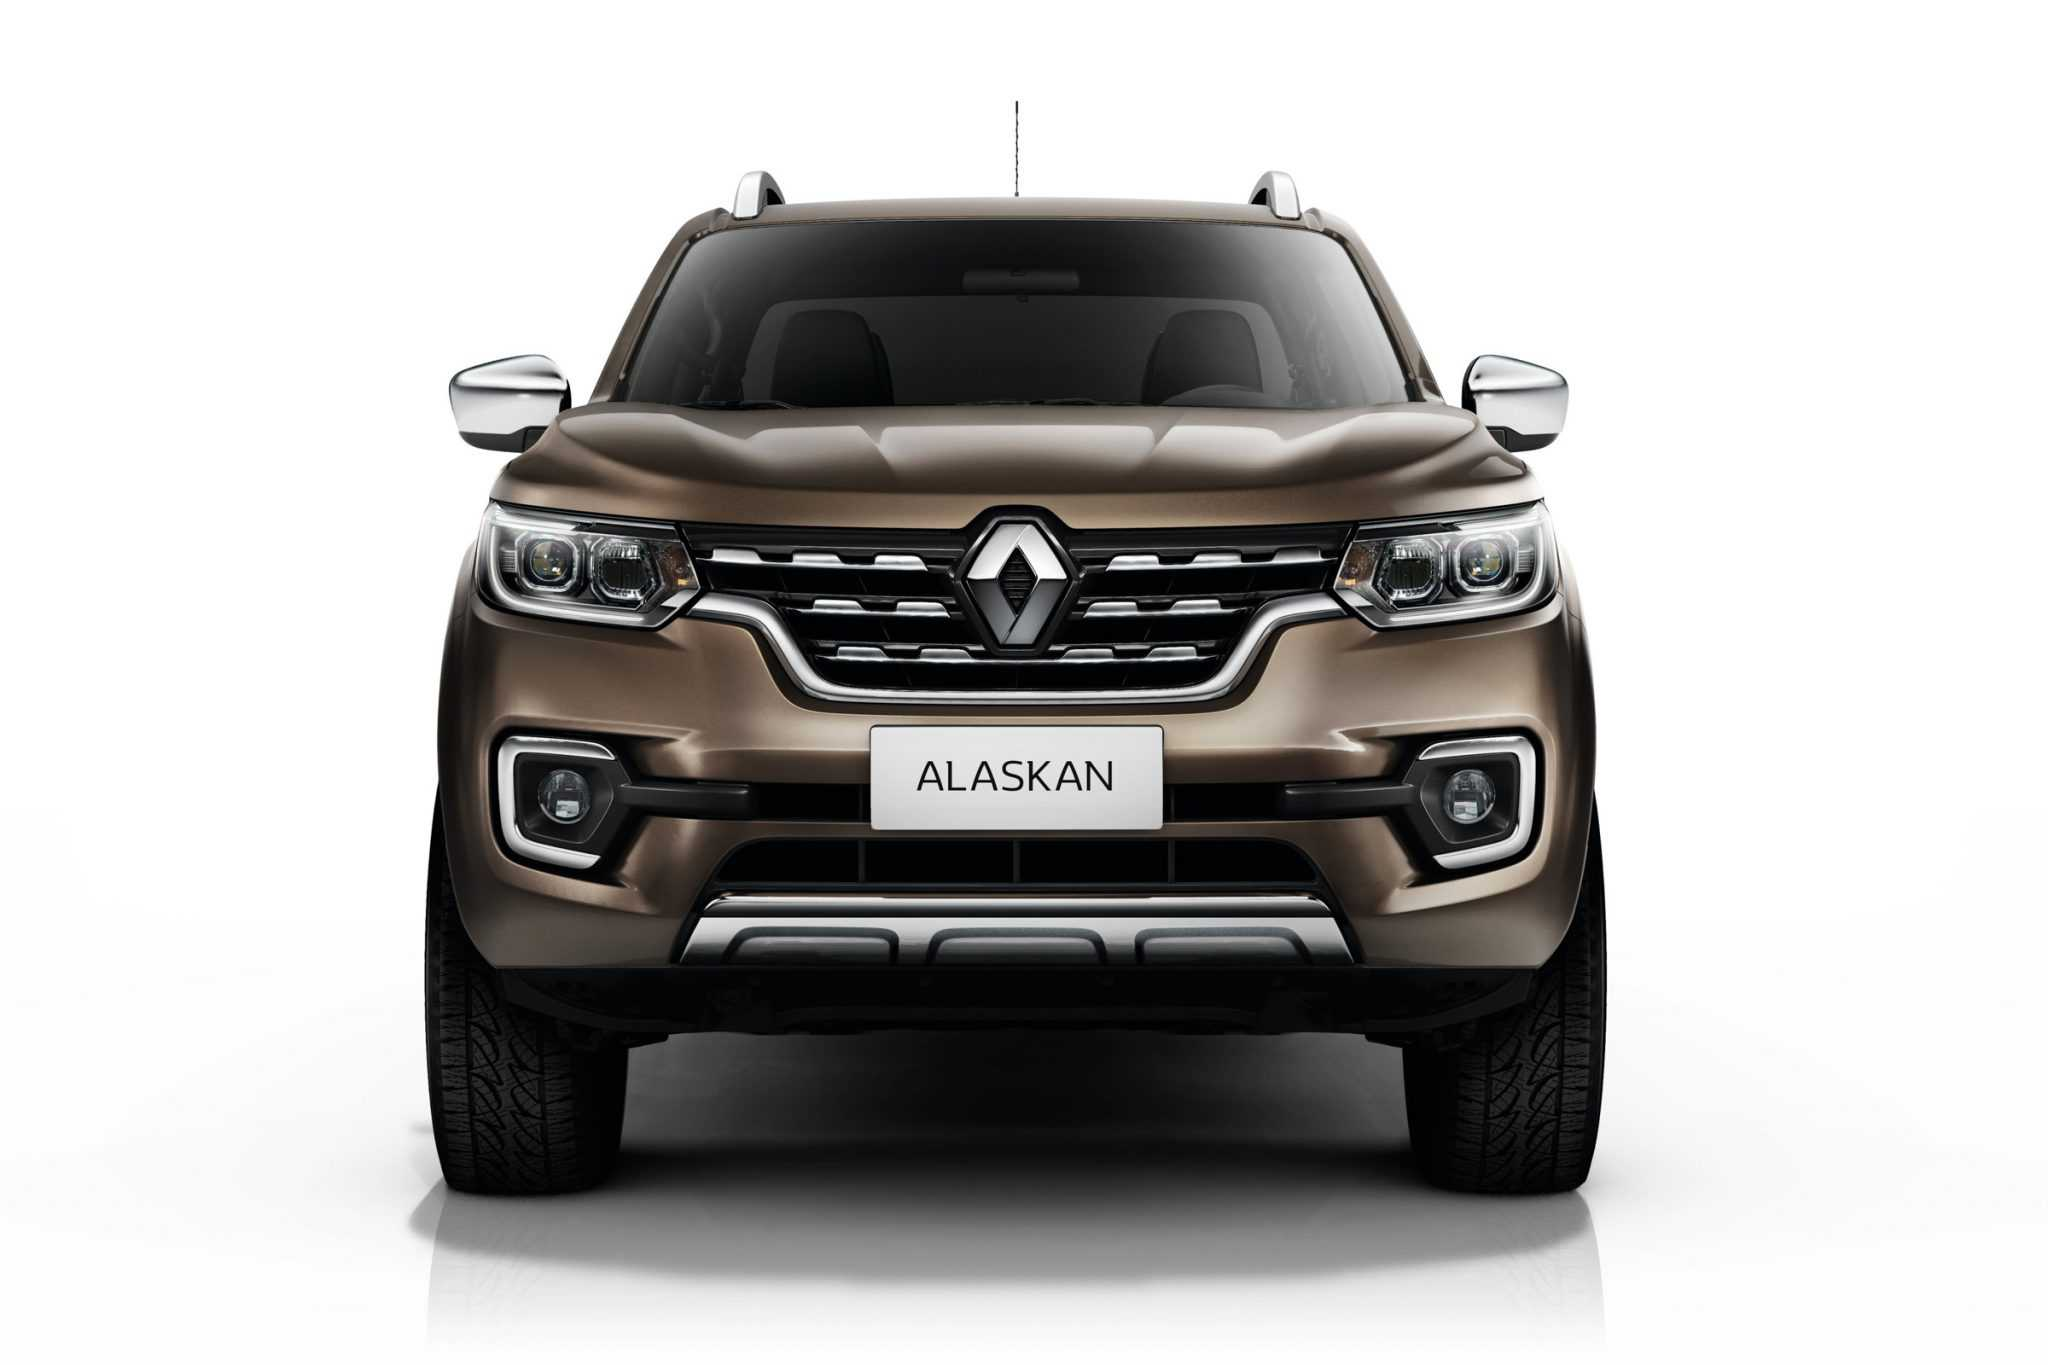 2017 Renault Alaskan Pick-up Truck – Details and Specs